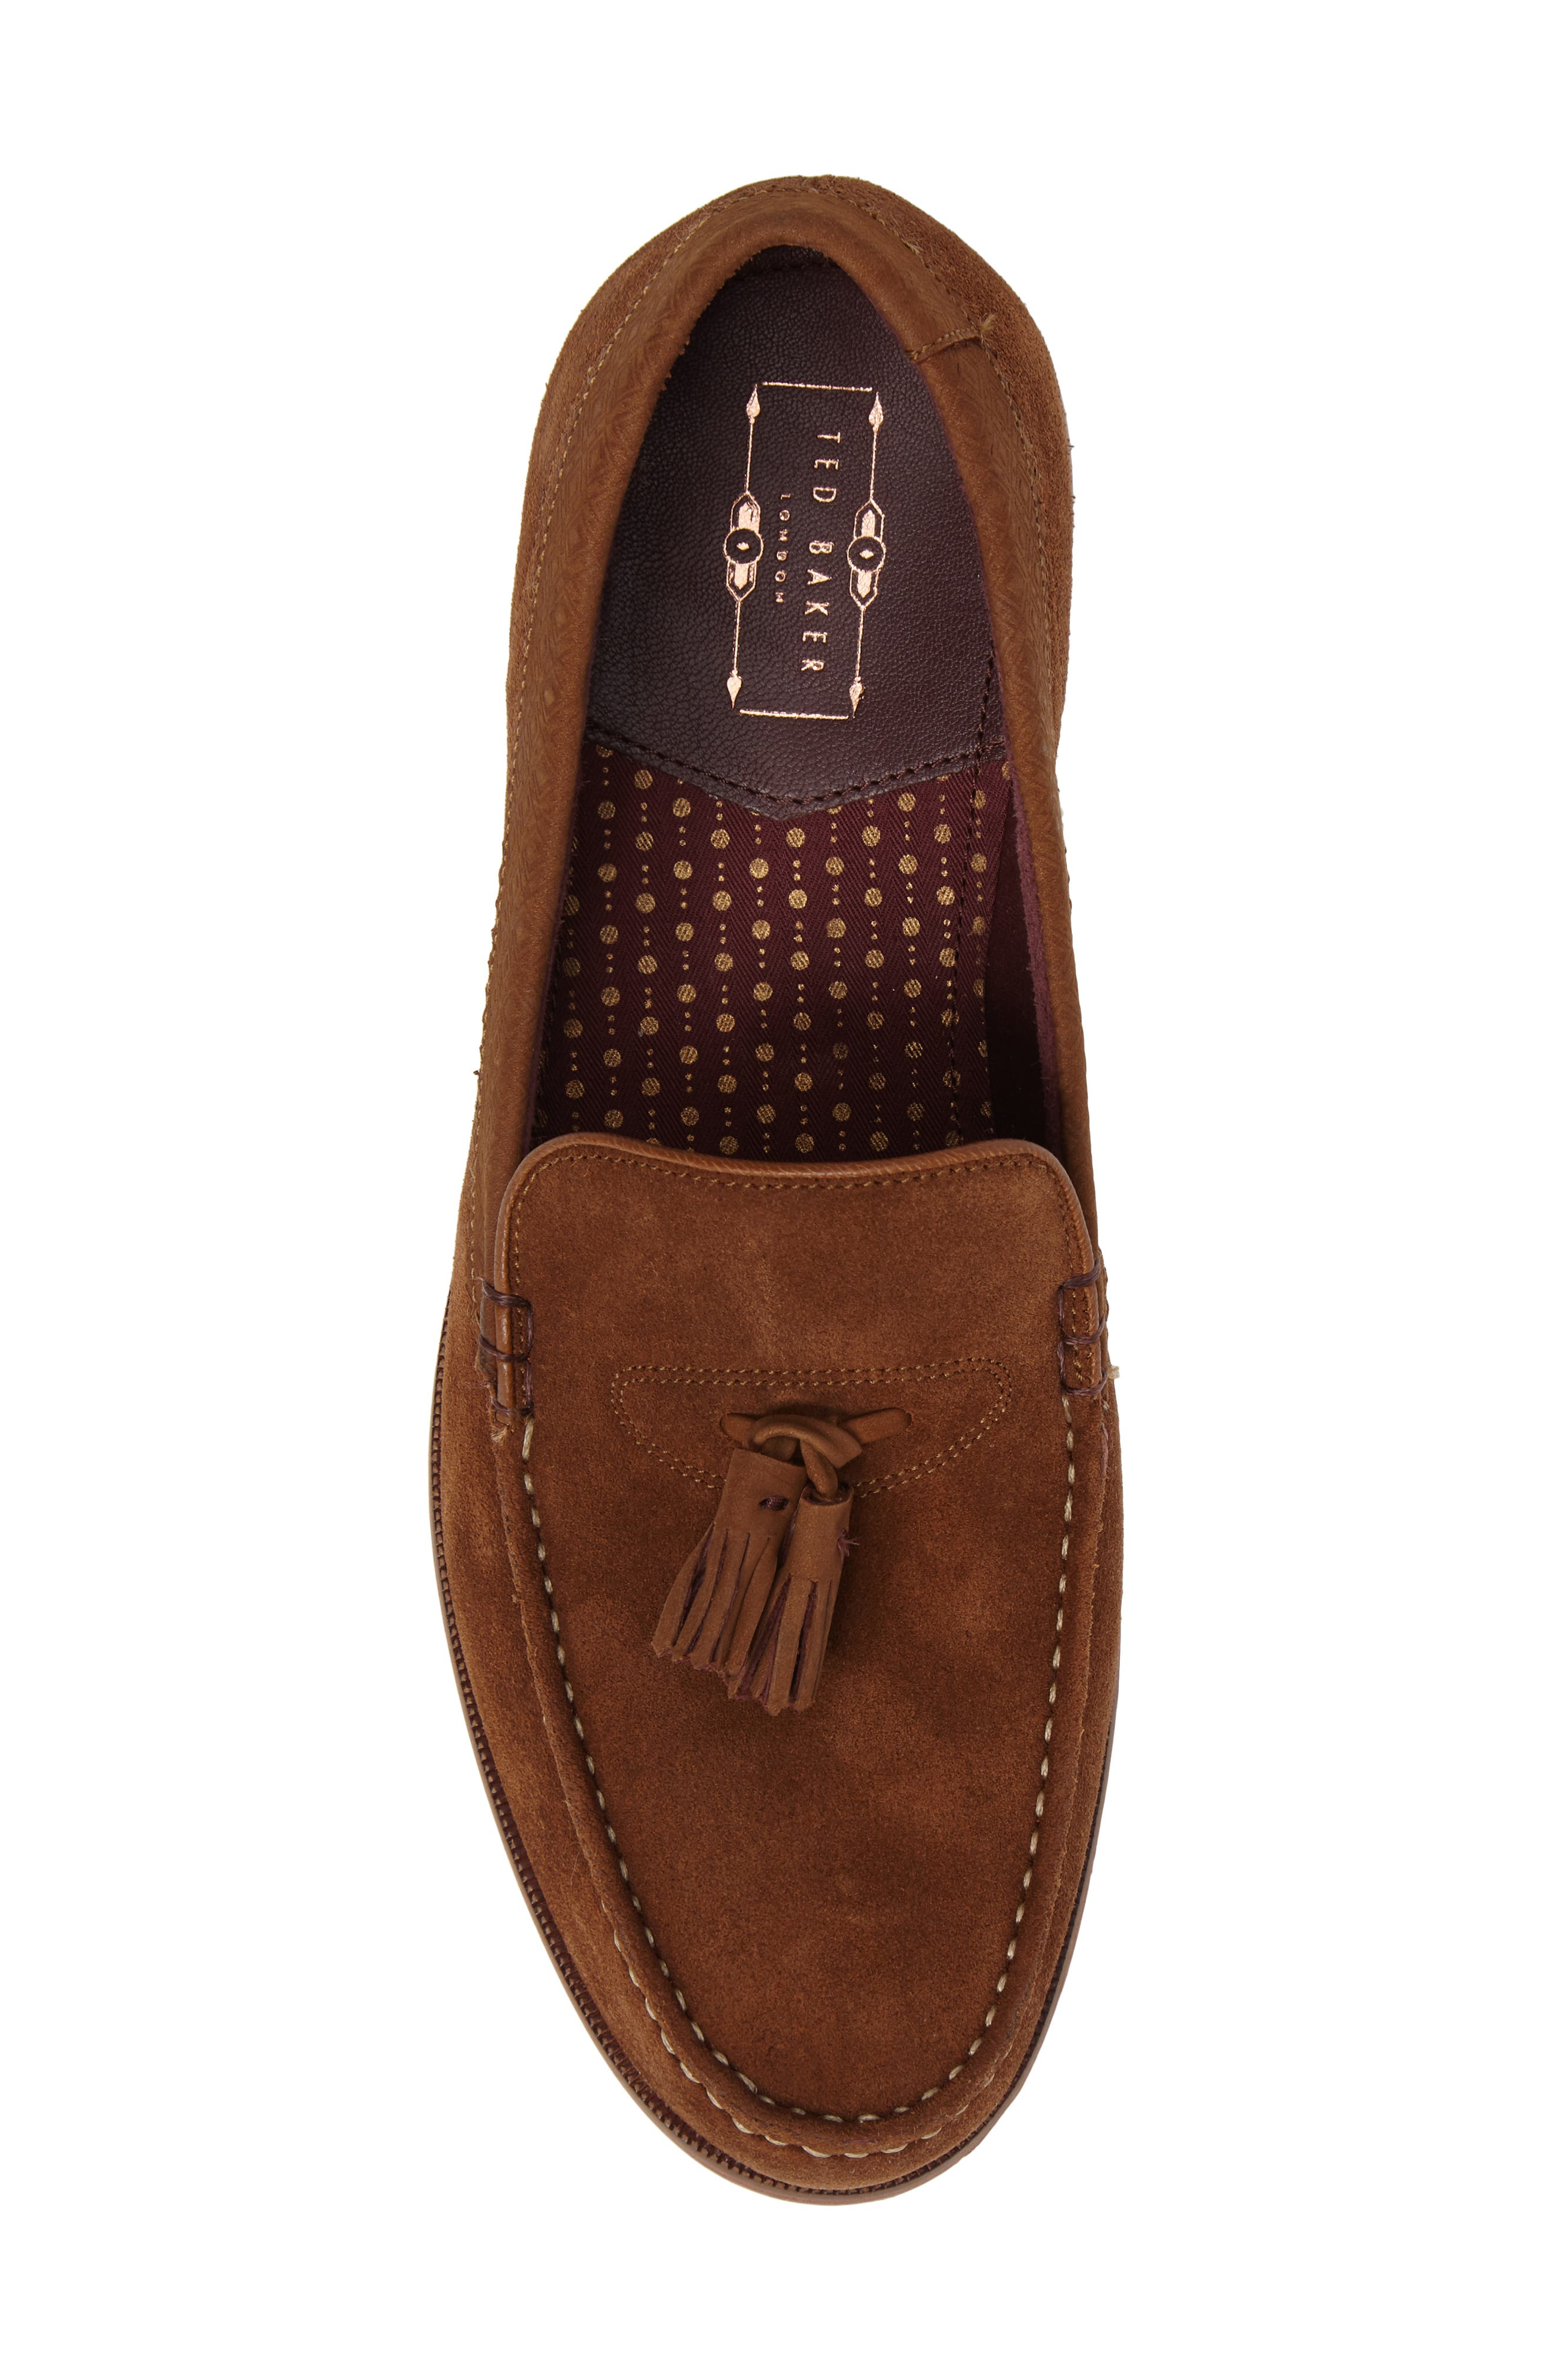 Dougge Tassel Loafer,                             Alternate thumbnail 25, color,